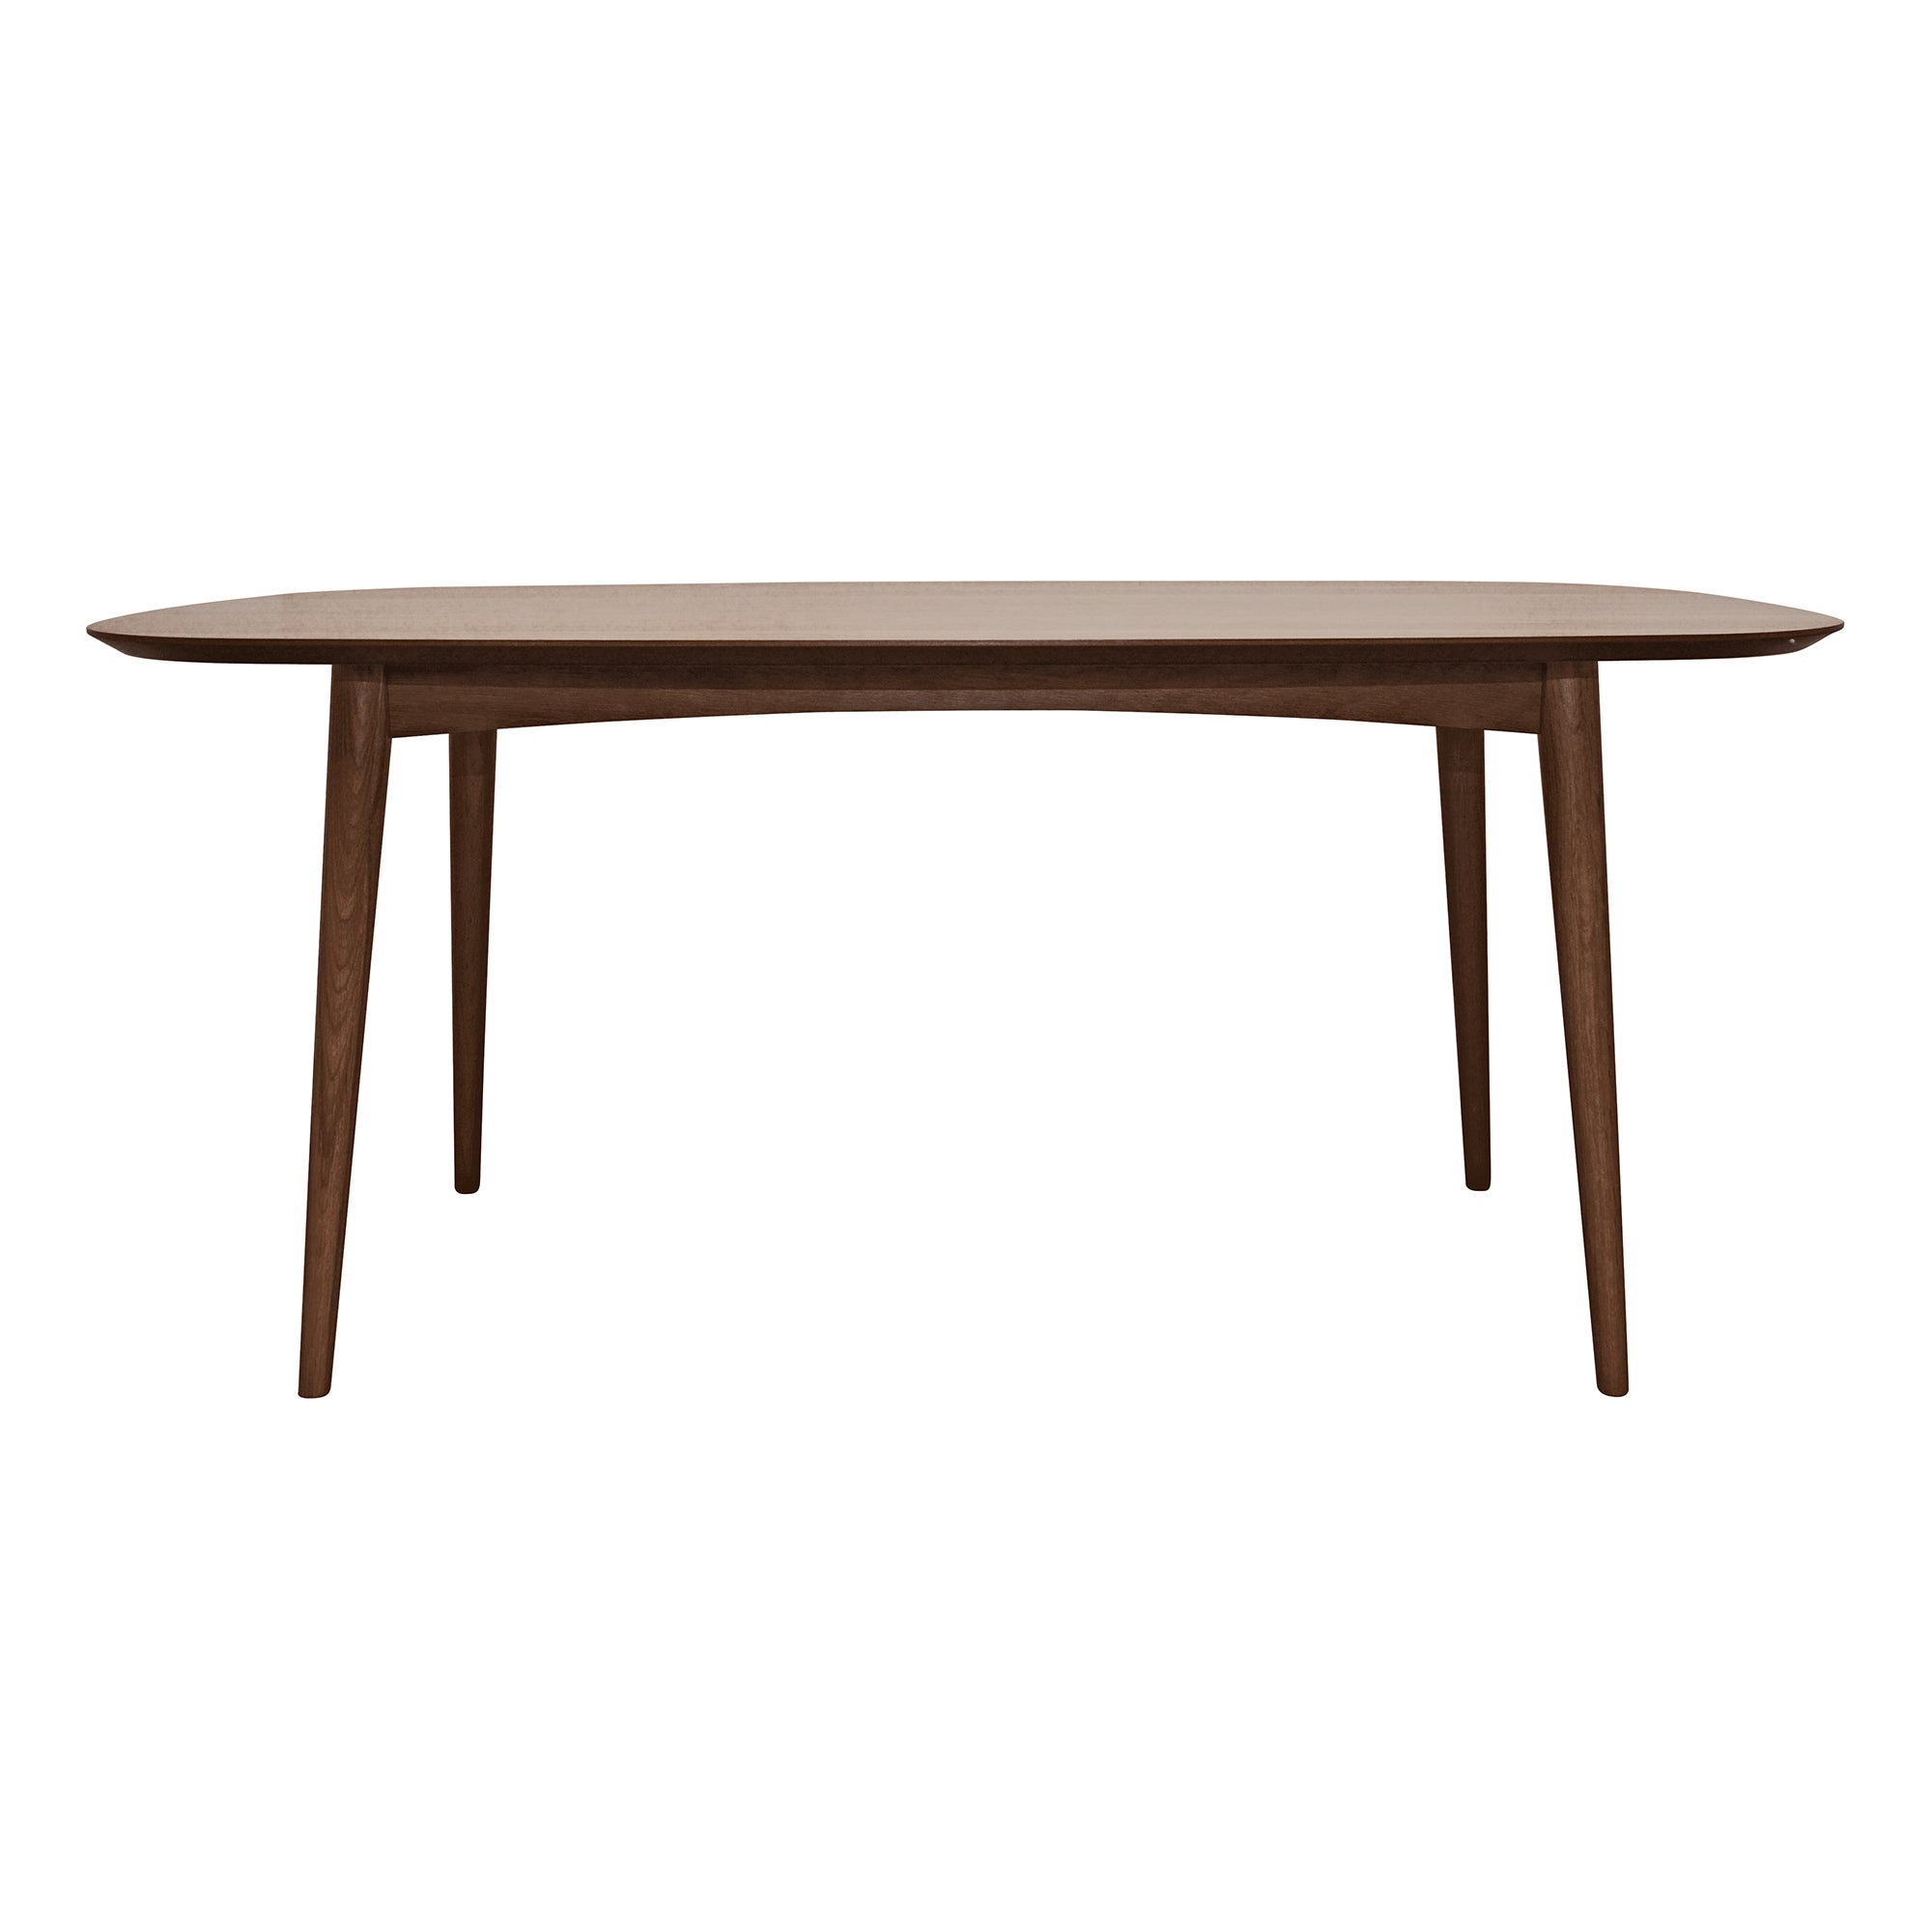 Skandi Walnut 6 Seater Dining Table